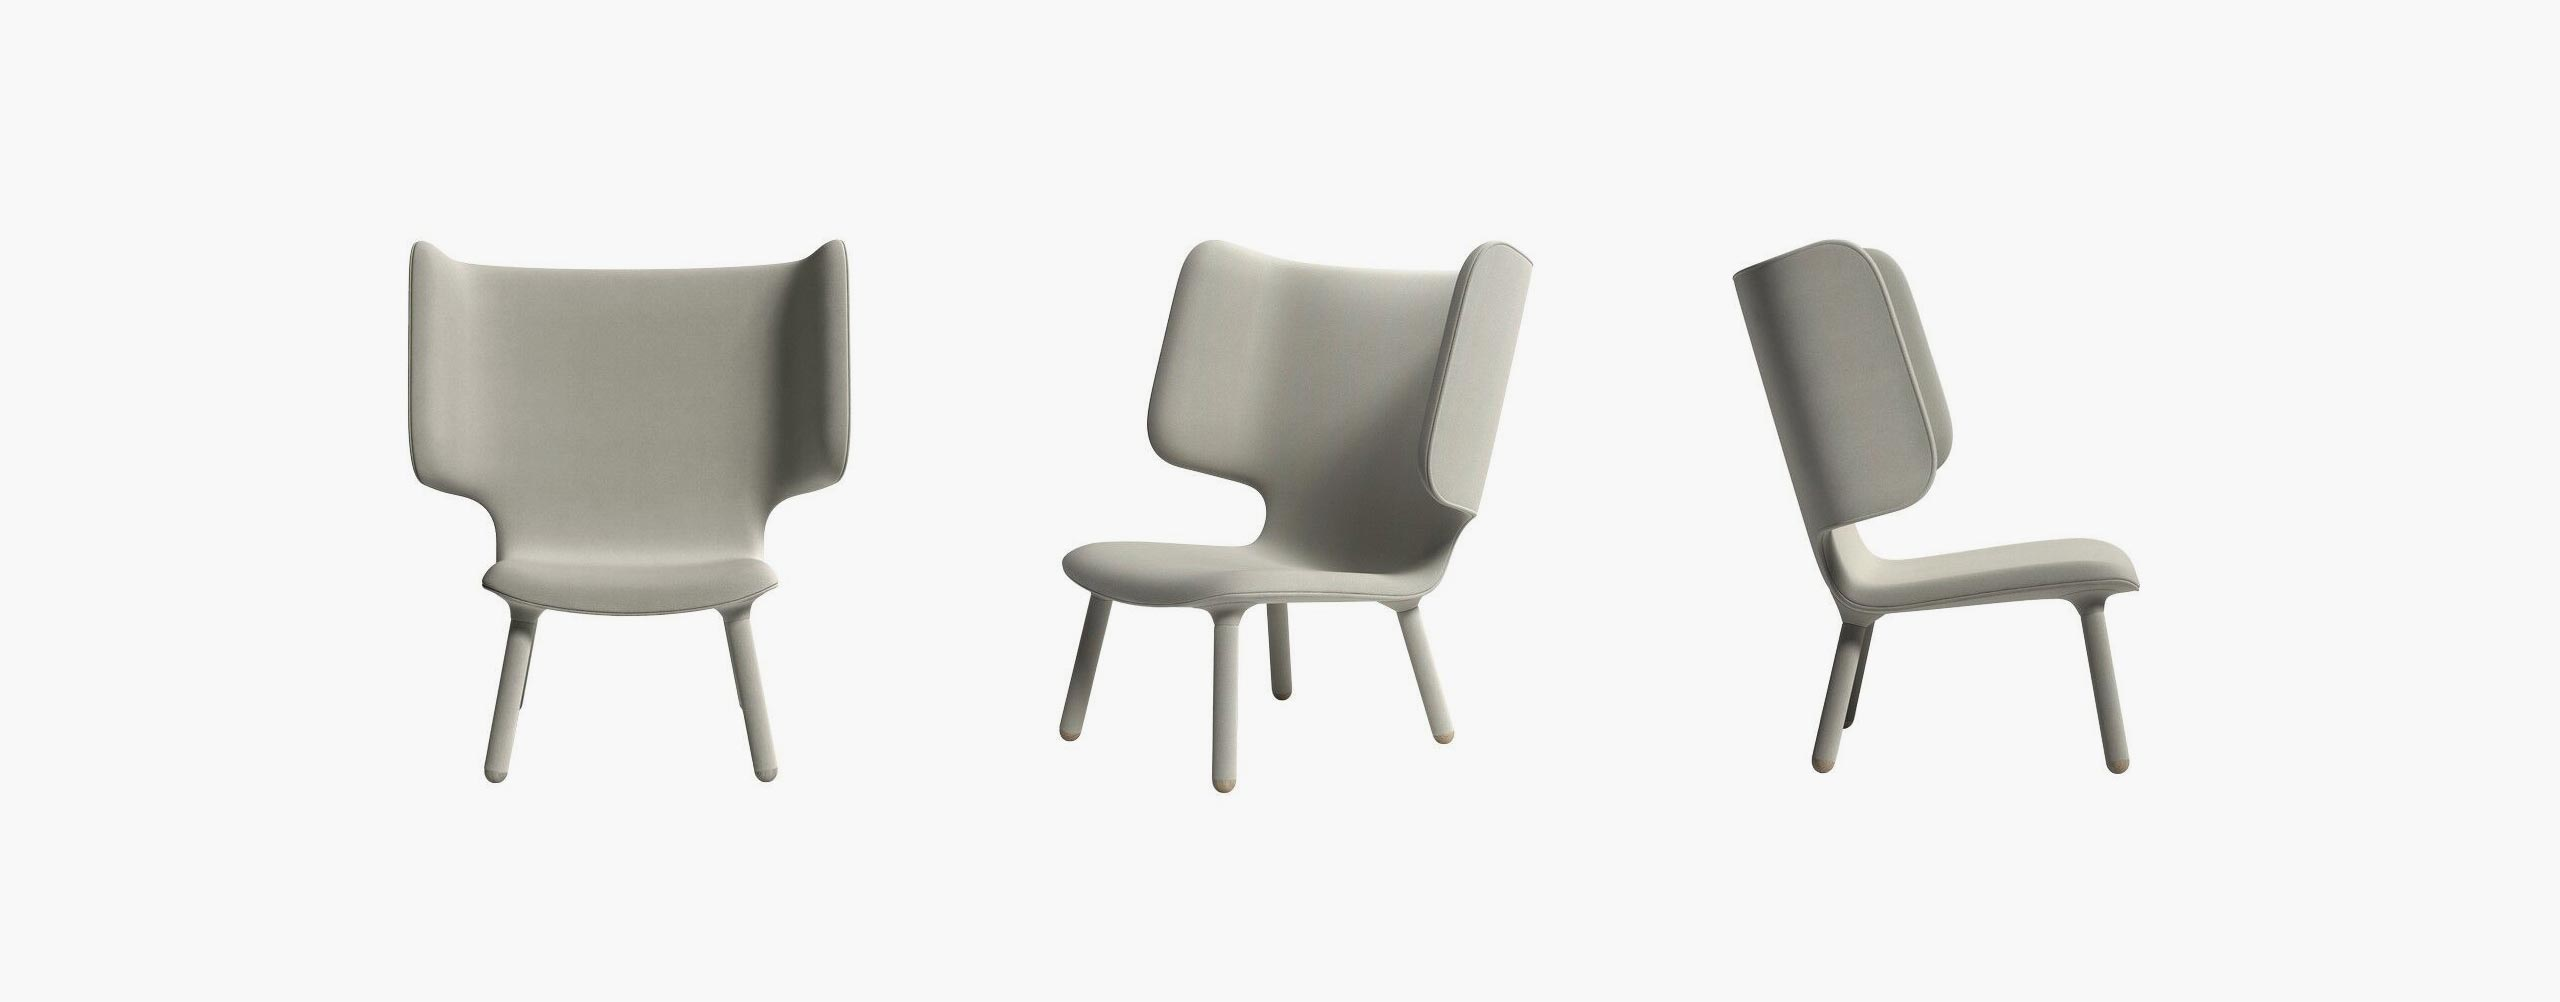 New Works' Tembo chair - 3d model & CGI by Design Connected